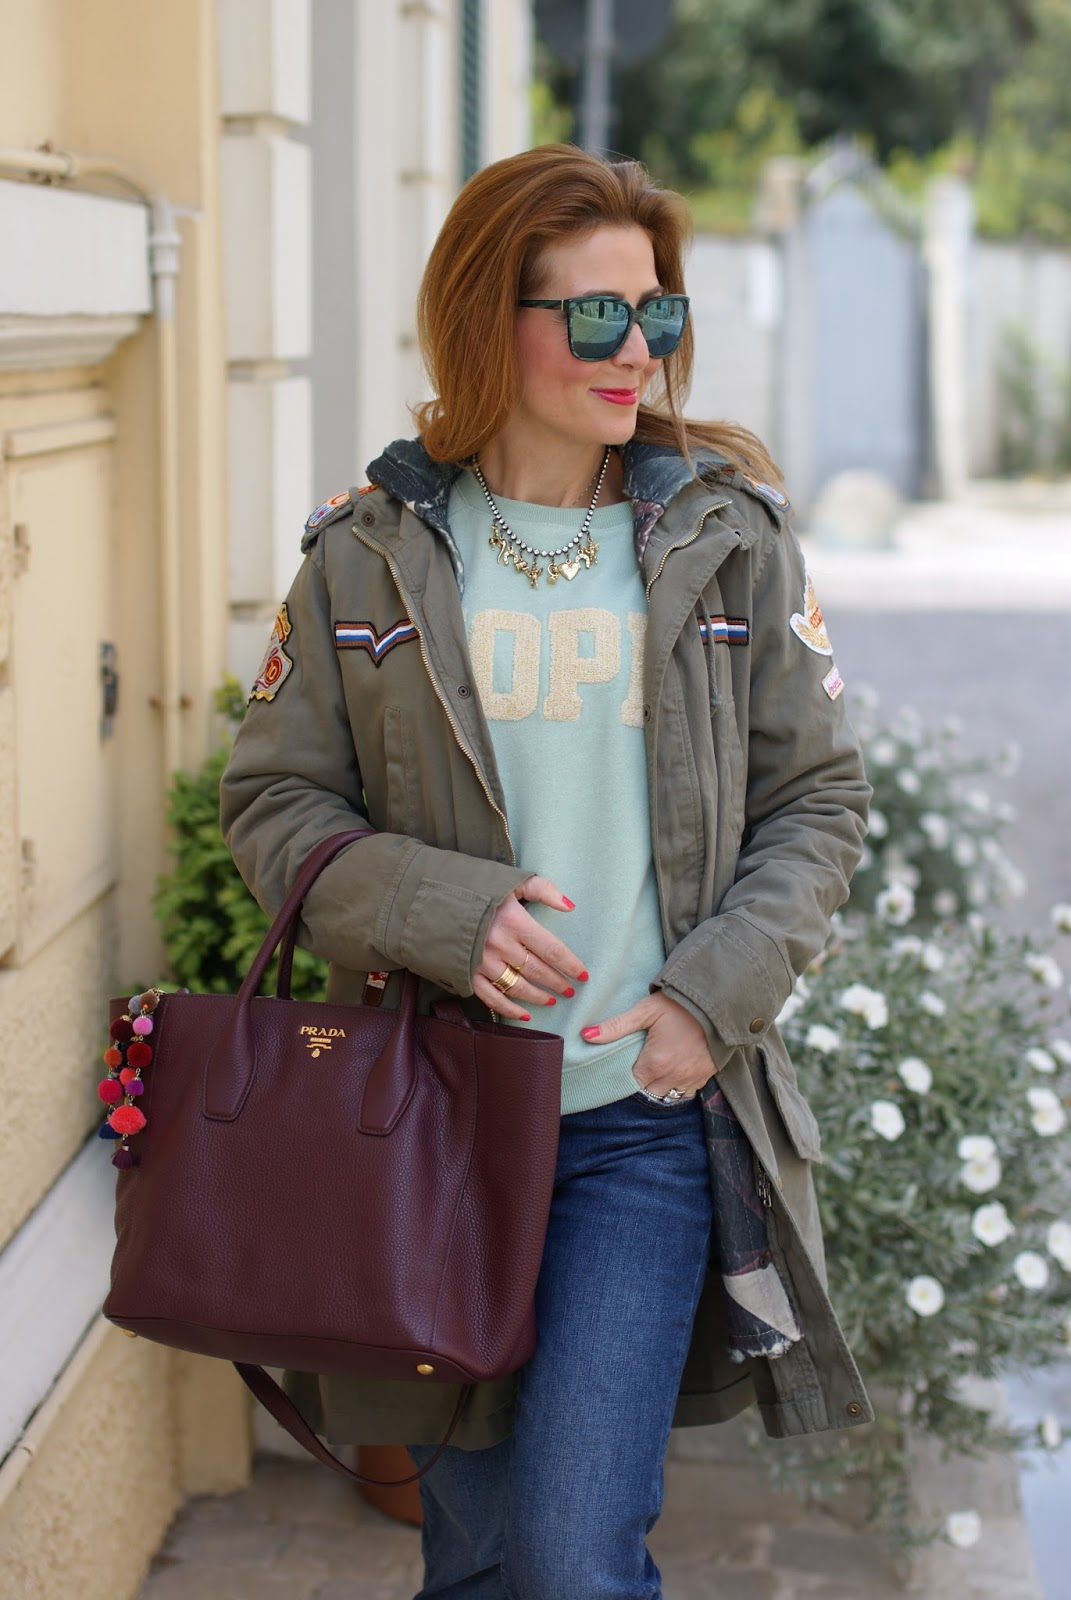 Hope sweatshirt, Parka jacket and Prada tote on Fashion and Cookies fashion blog, fashion blogger style